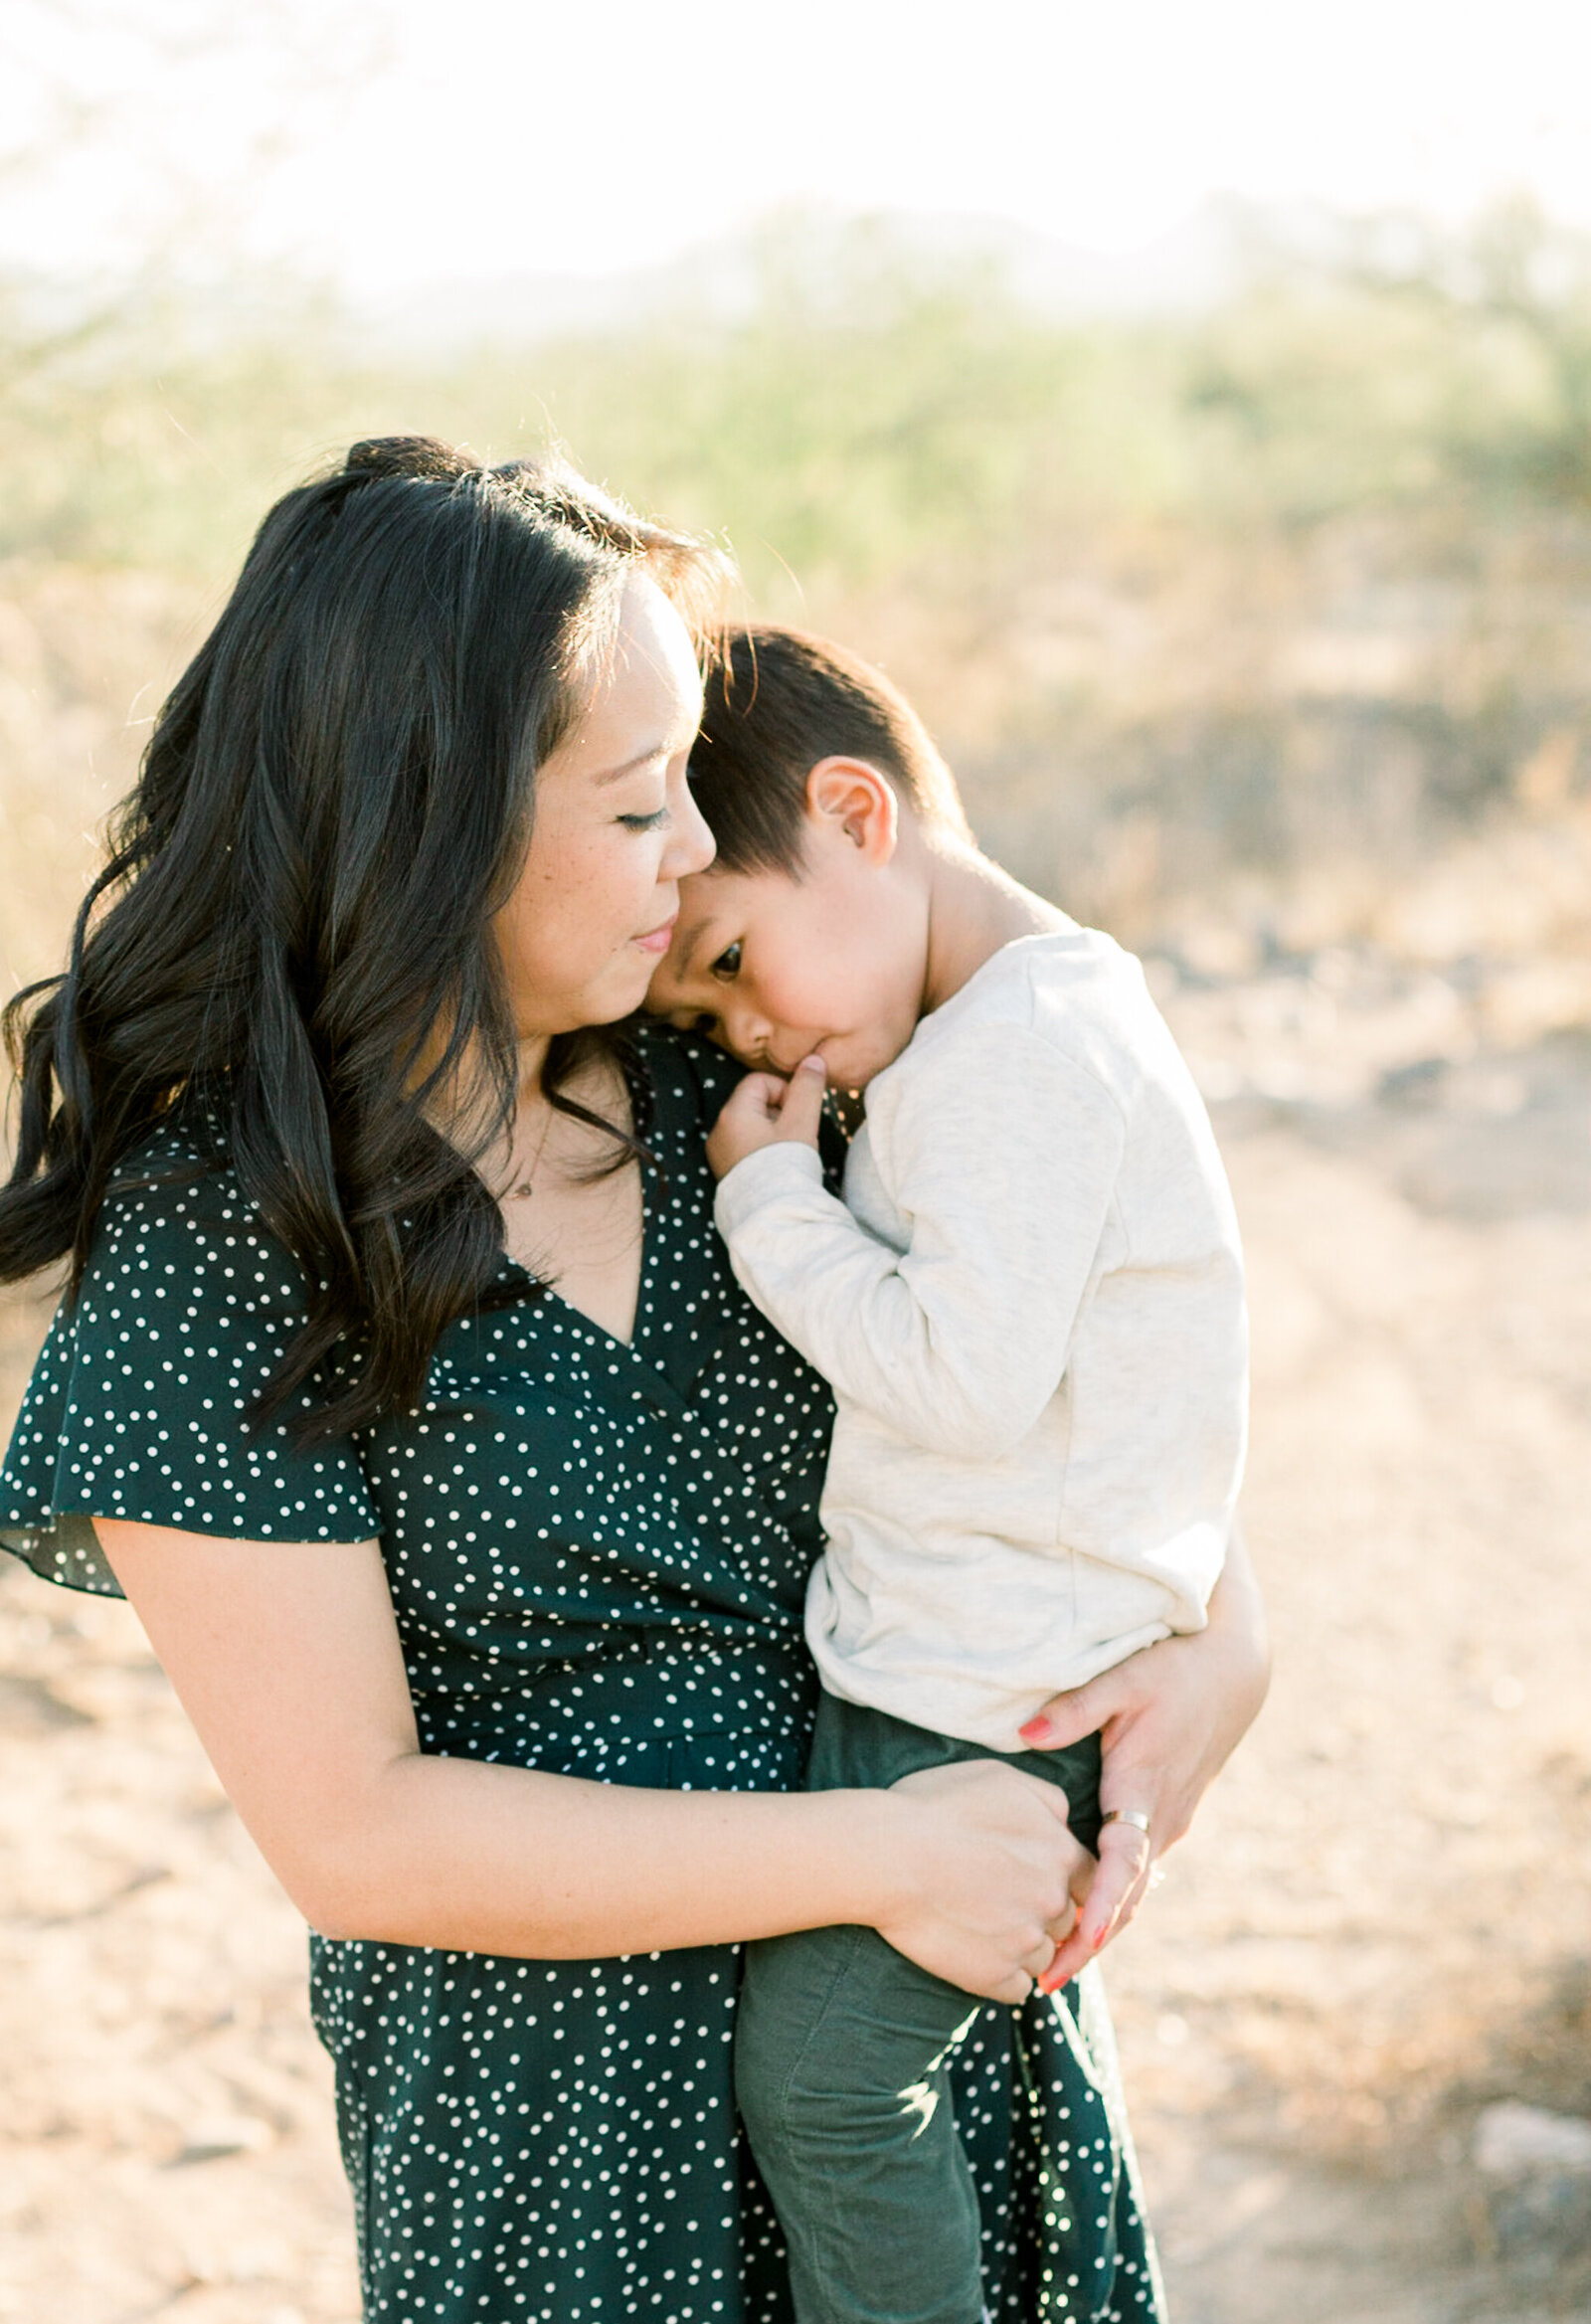 Aly-Kirk-Photo-Family-Photography-Arizona-0001